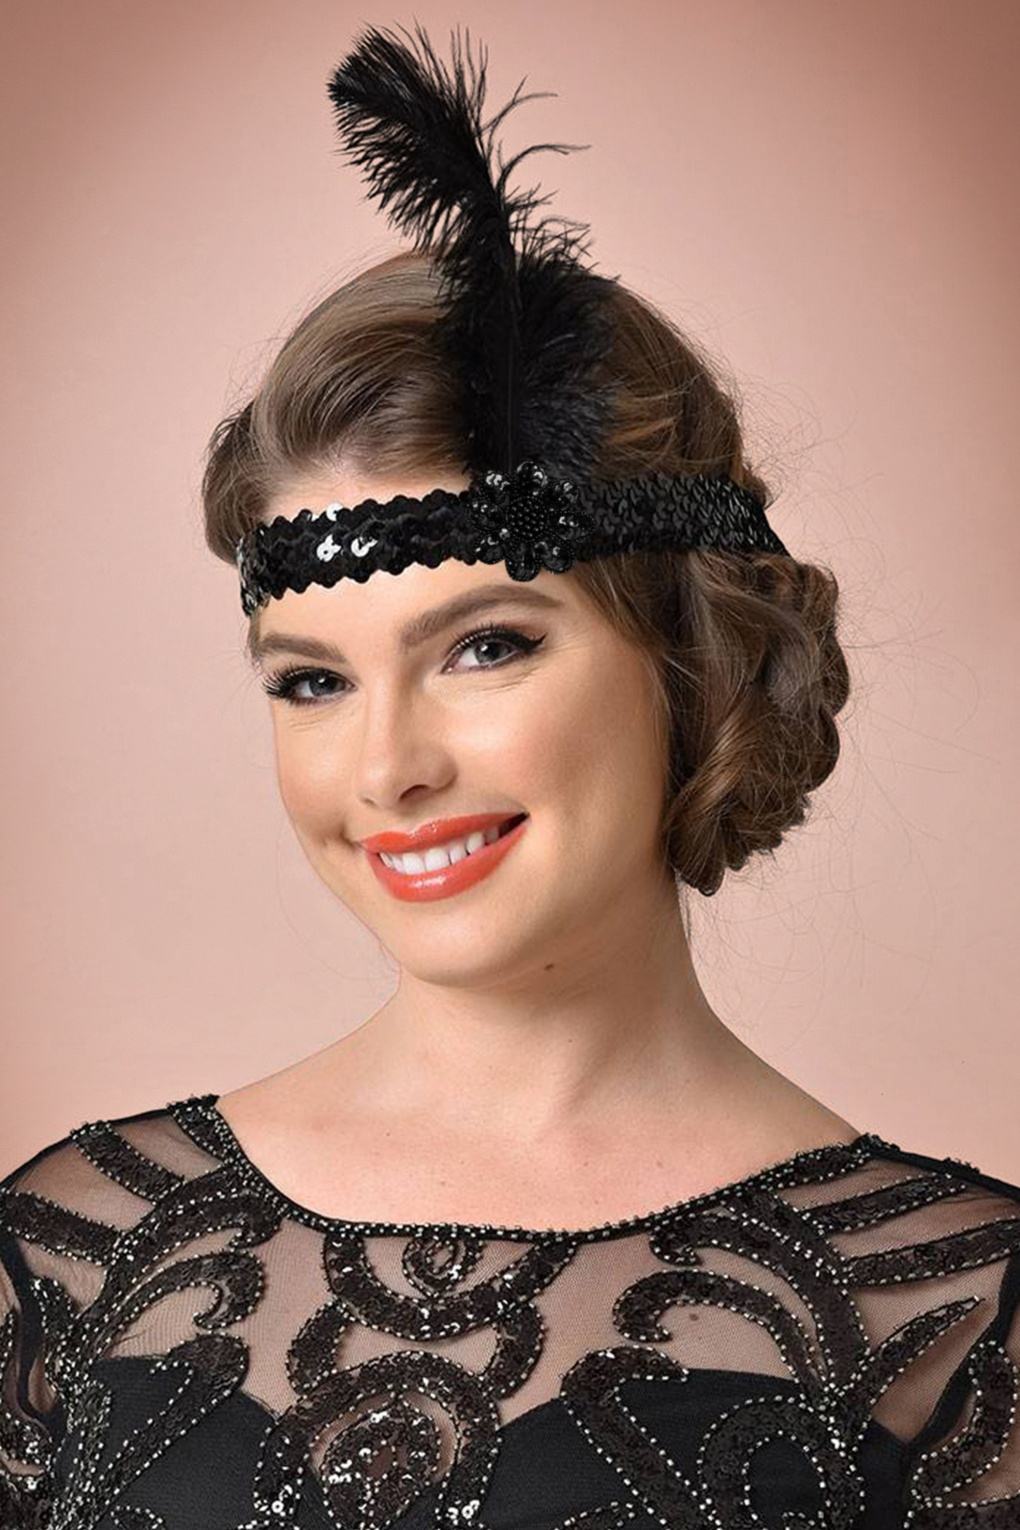 New 1920s Costume Jewelry- Earrings, Necklaces, Bracelets 20s Feather and Sequins Headband in Black £18.00 AT vintagedancer.com